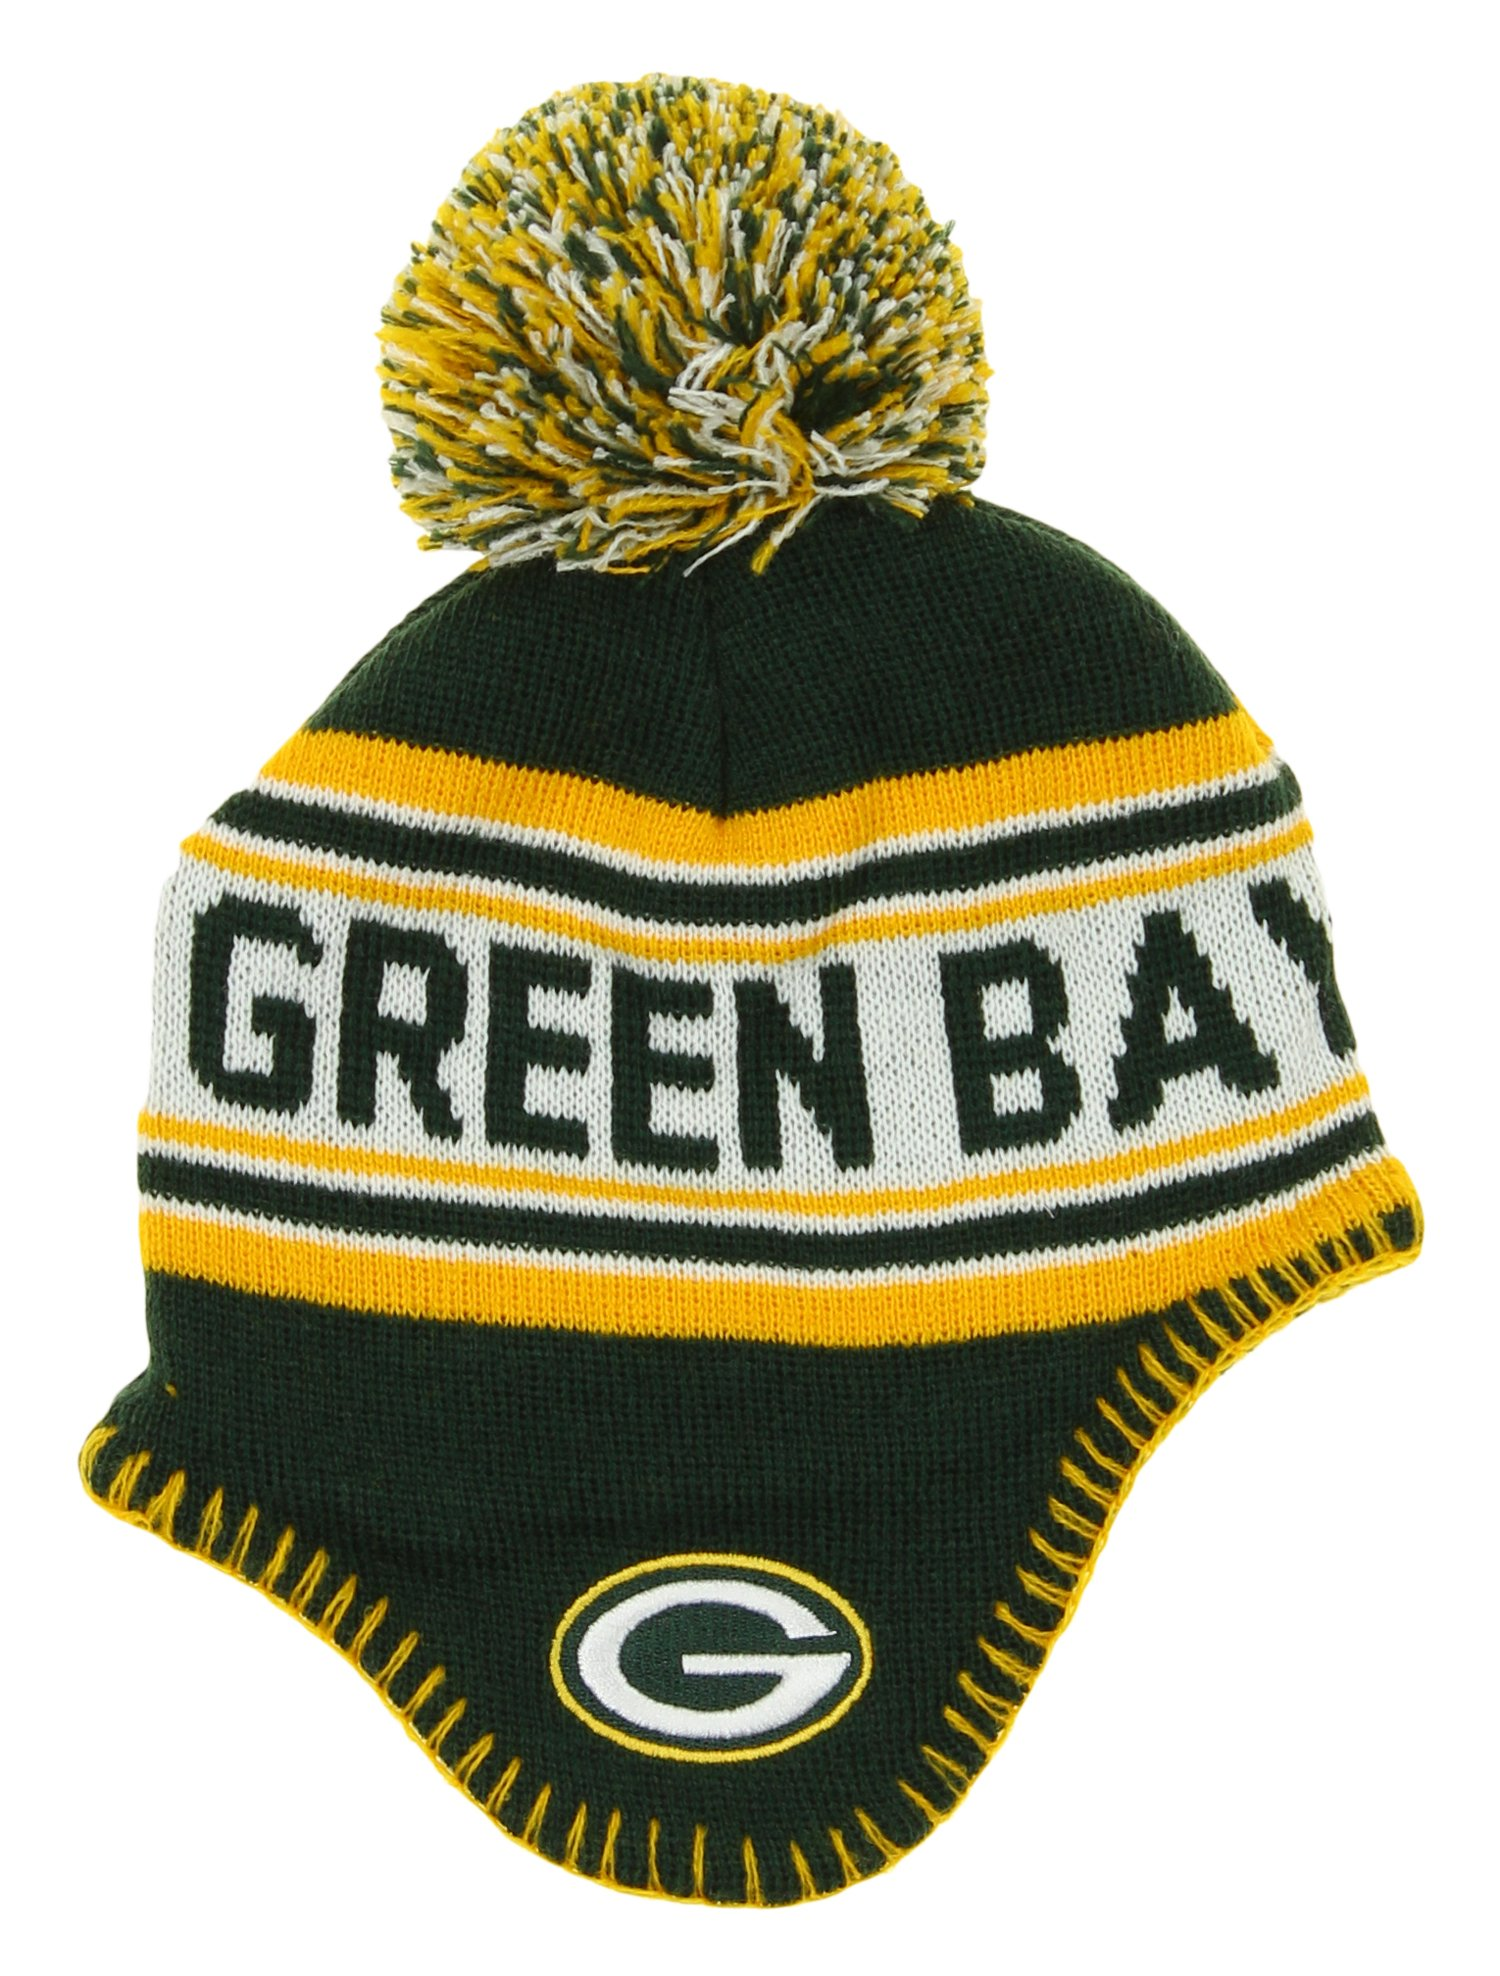 00a37644e top quality nfl infant green bay packers pom knit hat one size fits most  6d58b b7843